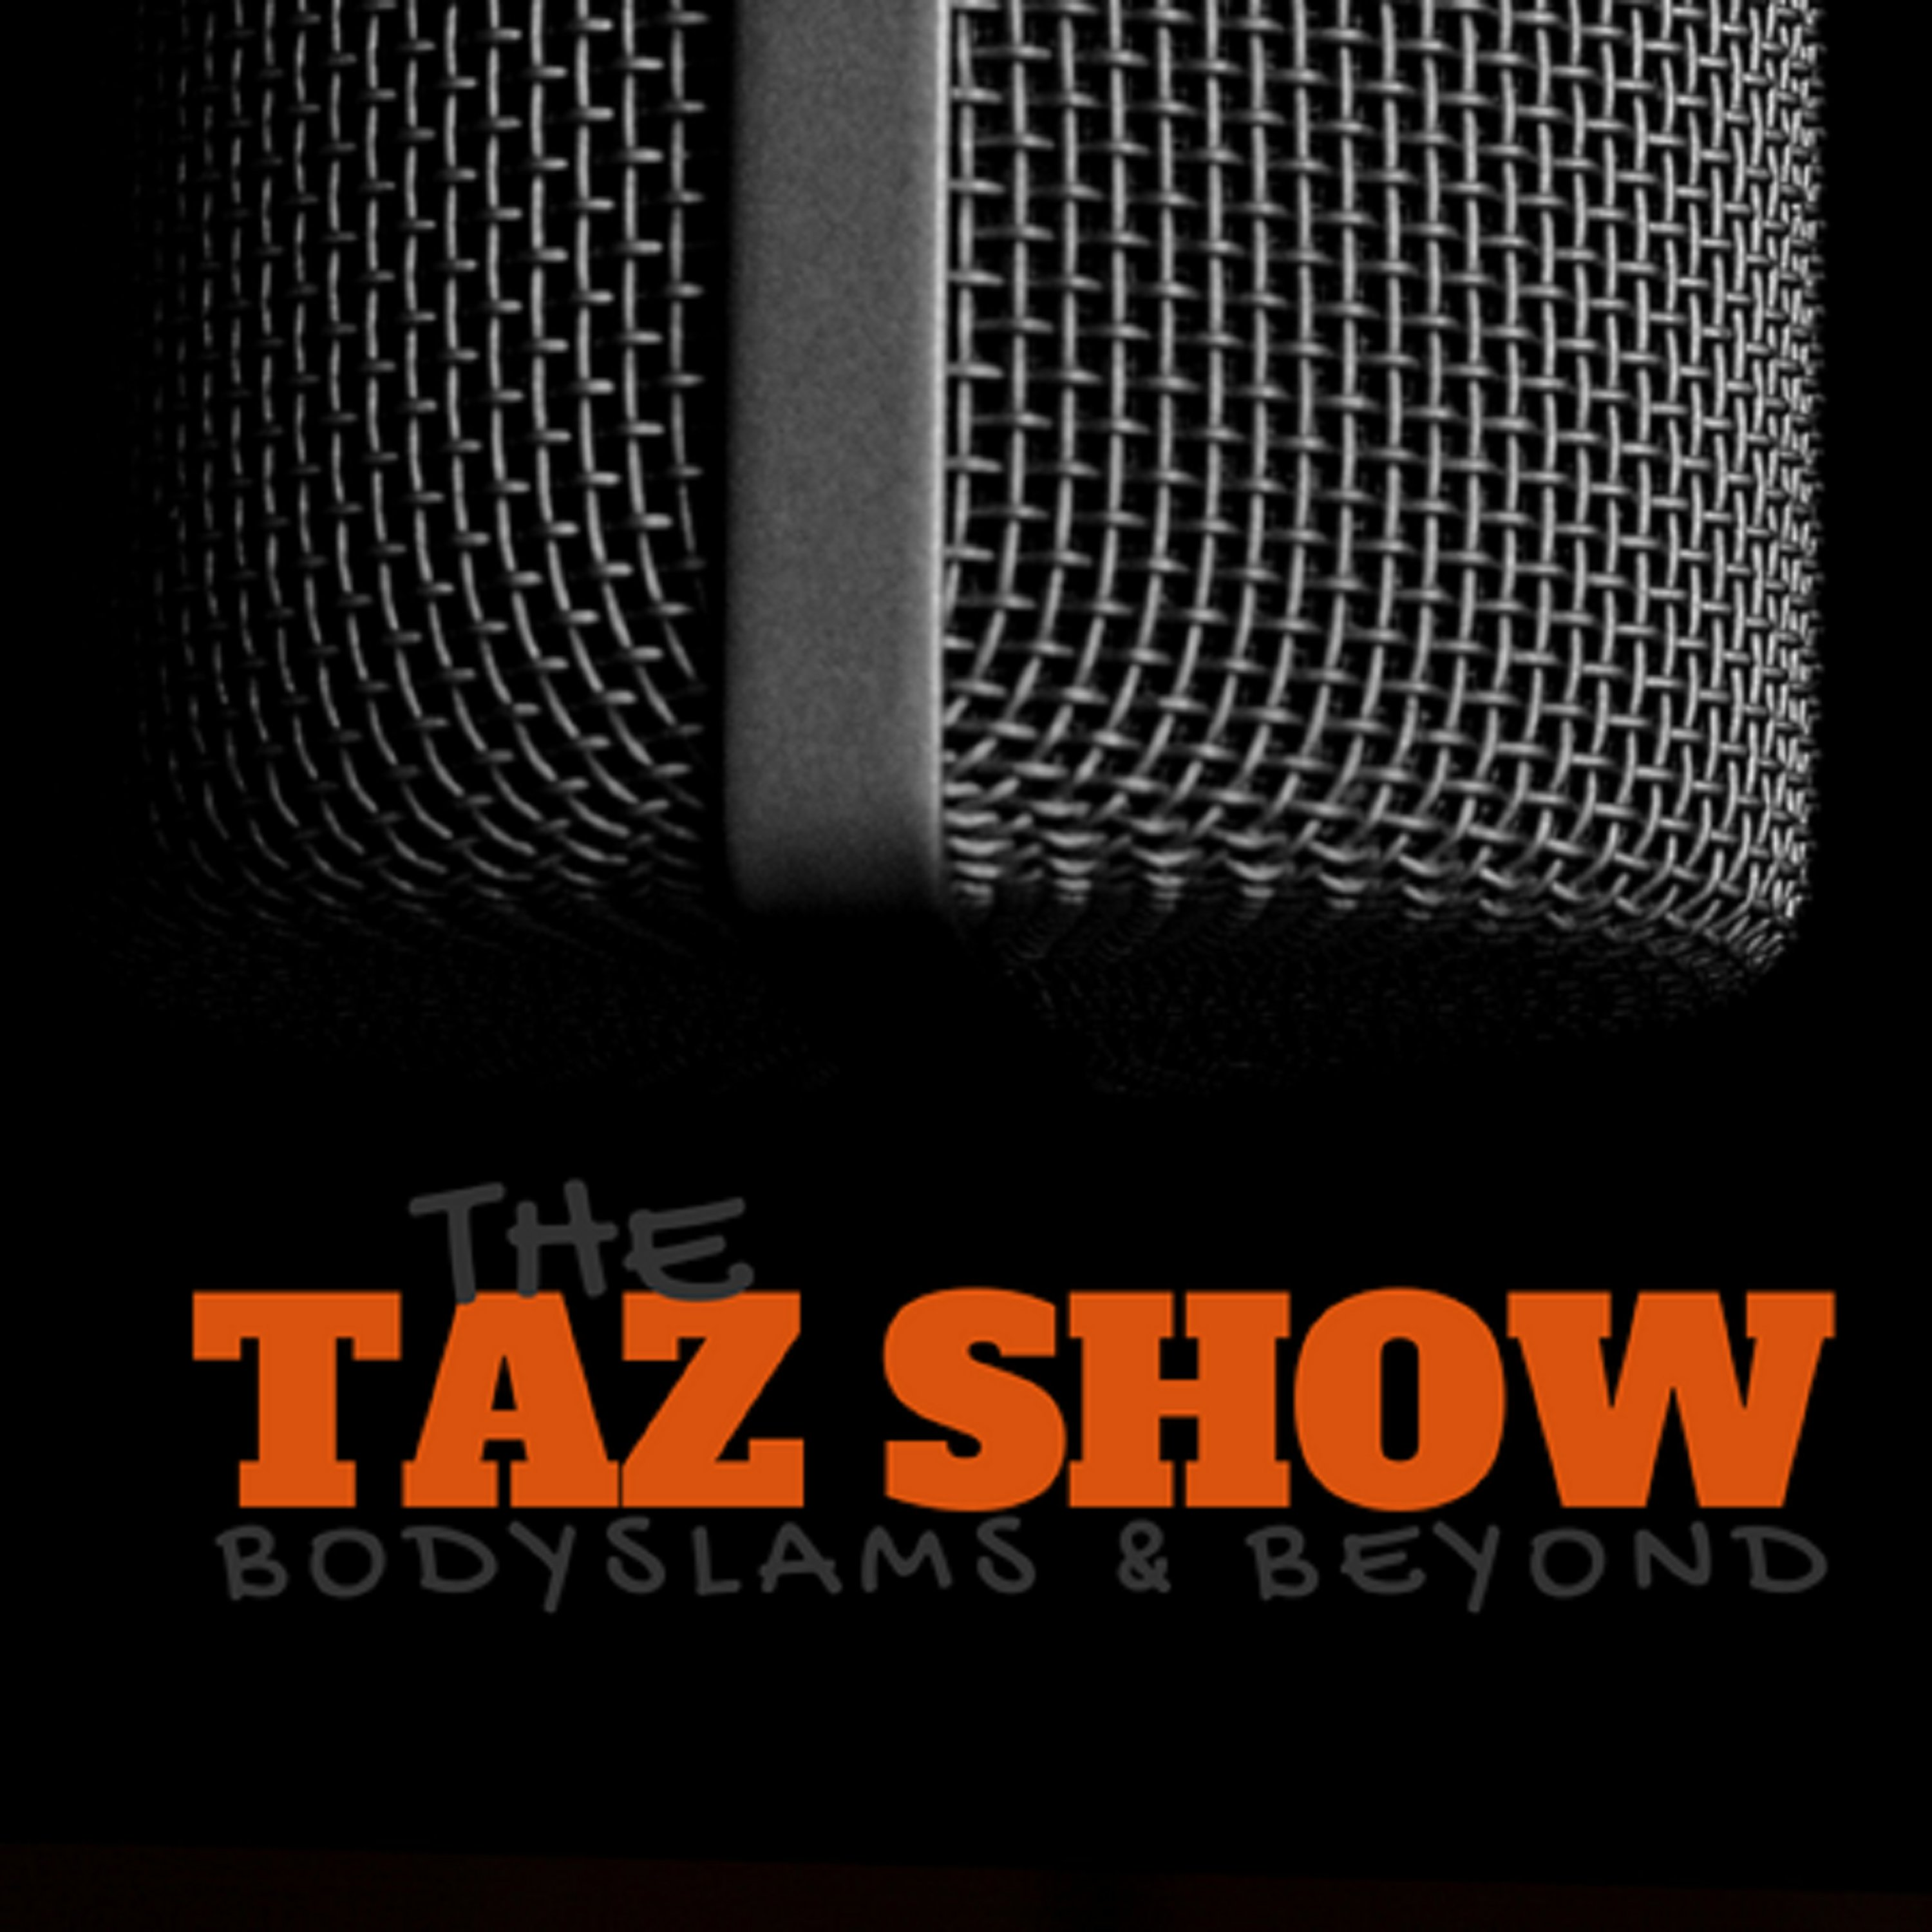 The Taz Show Logo